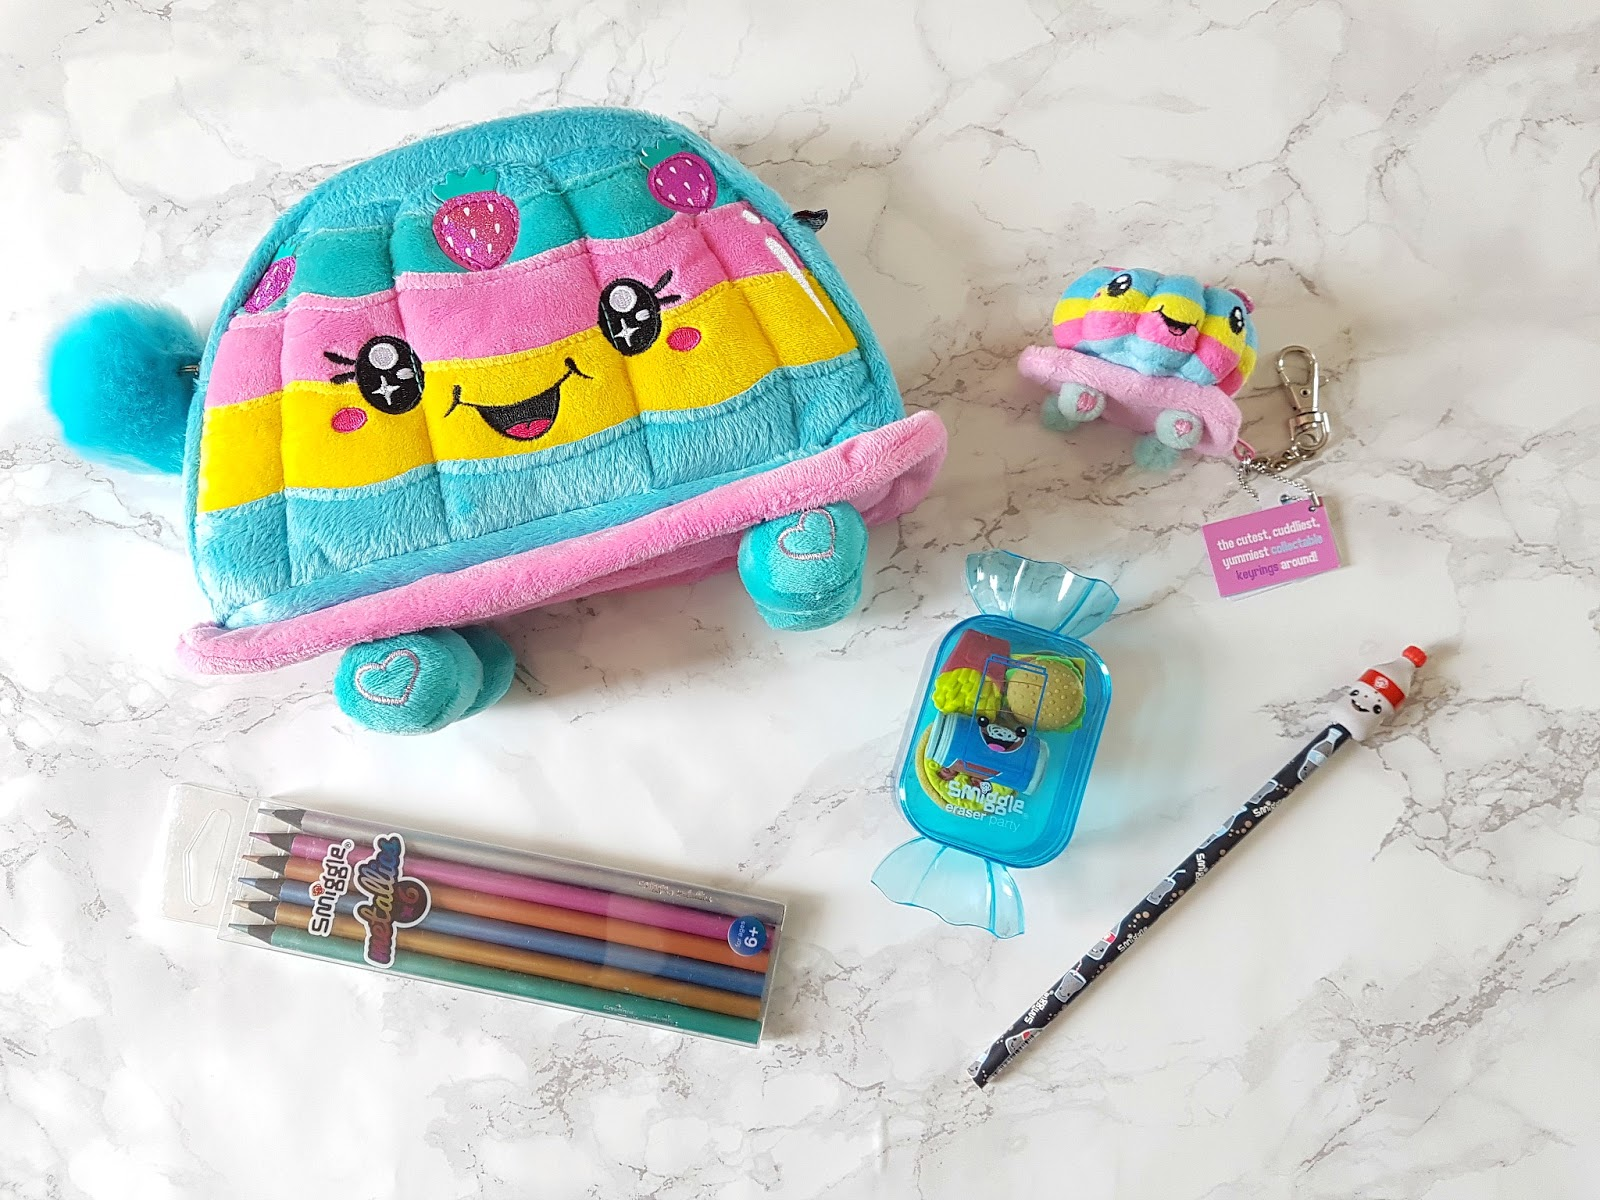 Scented pens, Smiggles, scented pencil case